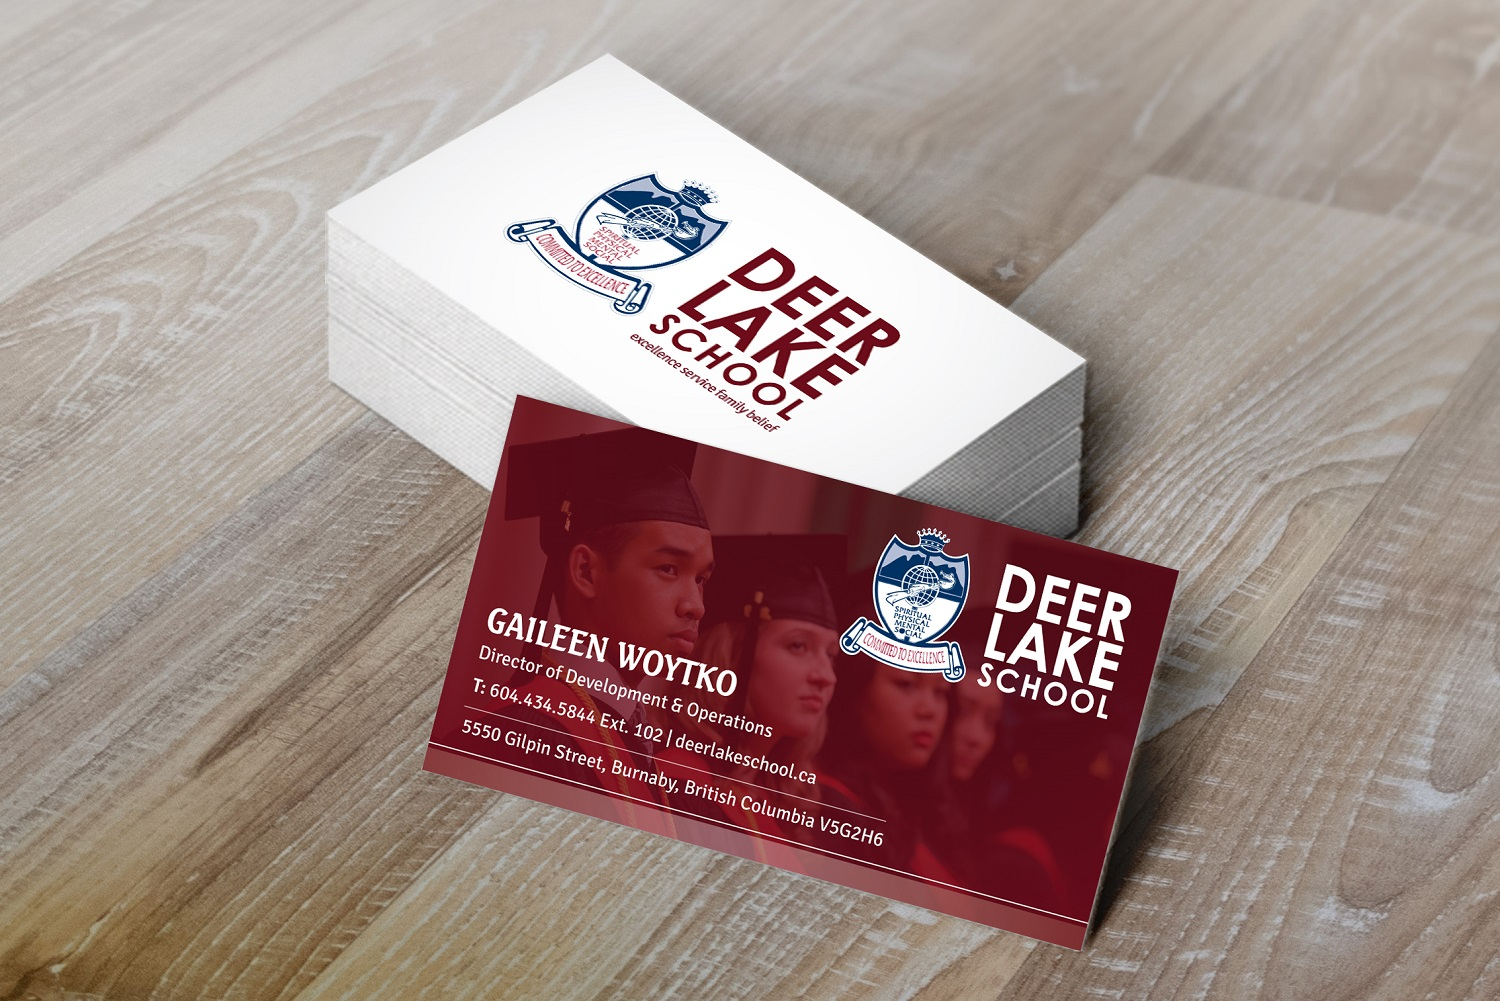 Modern professional education business card design for deer lake business card design by kreative fingers for deer lake school design 12382982 reheart Gallery